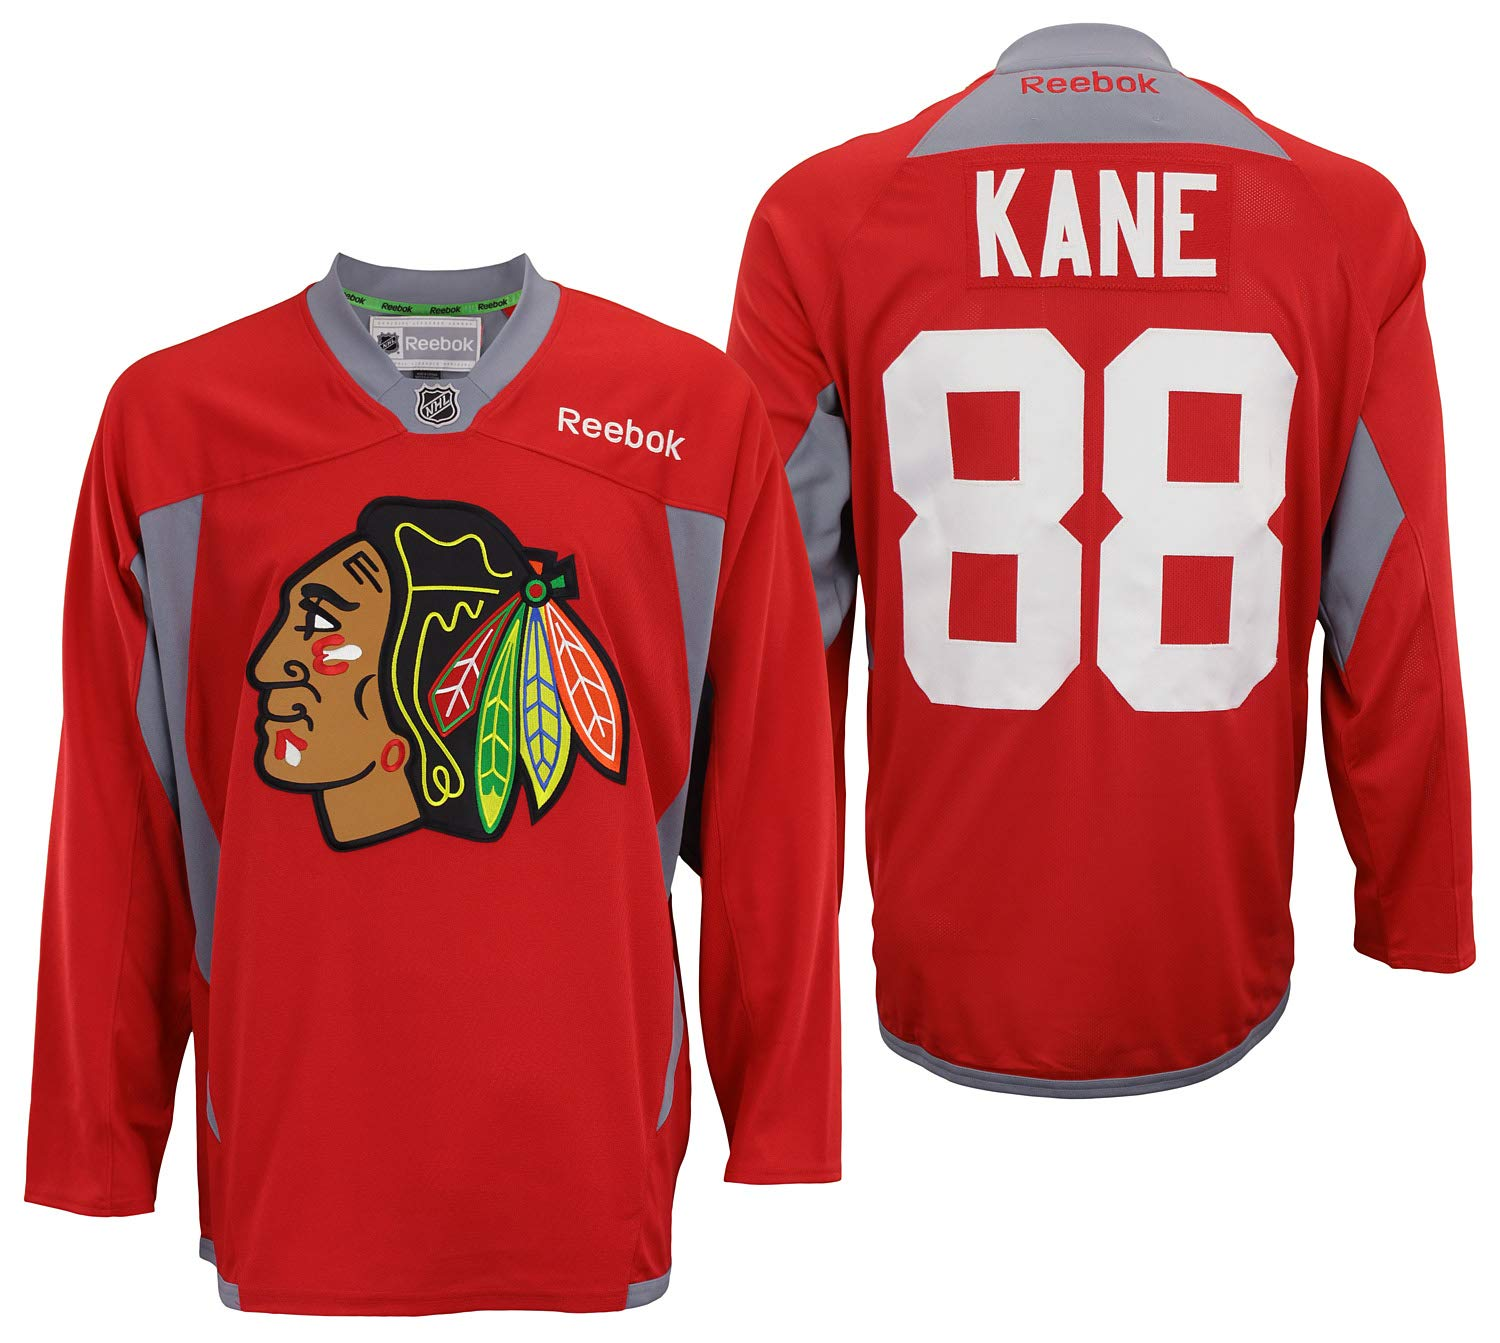 6b43d5497e3 Reebok NHL Men's Chicago Blackhawks Patrick Kane #88 Practice Jersey Red